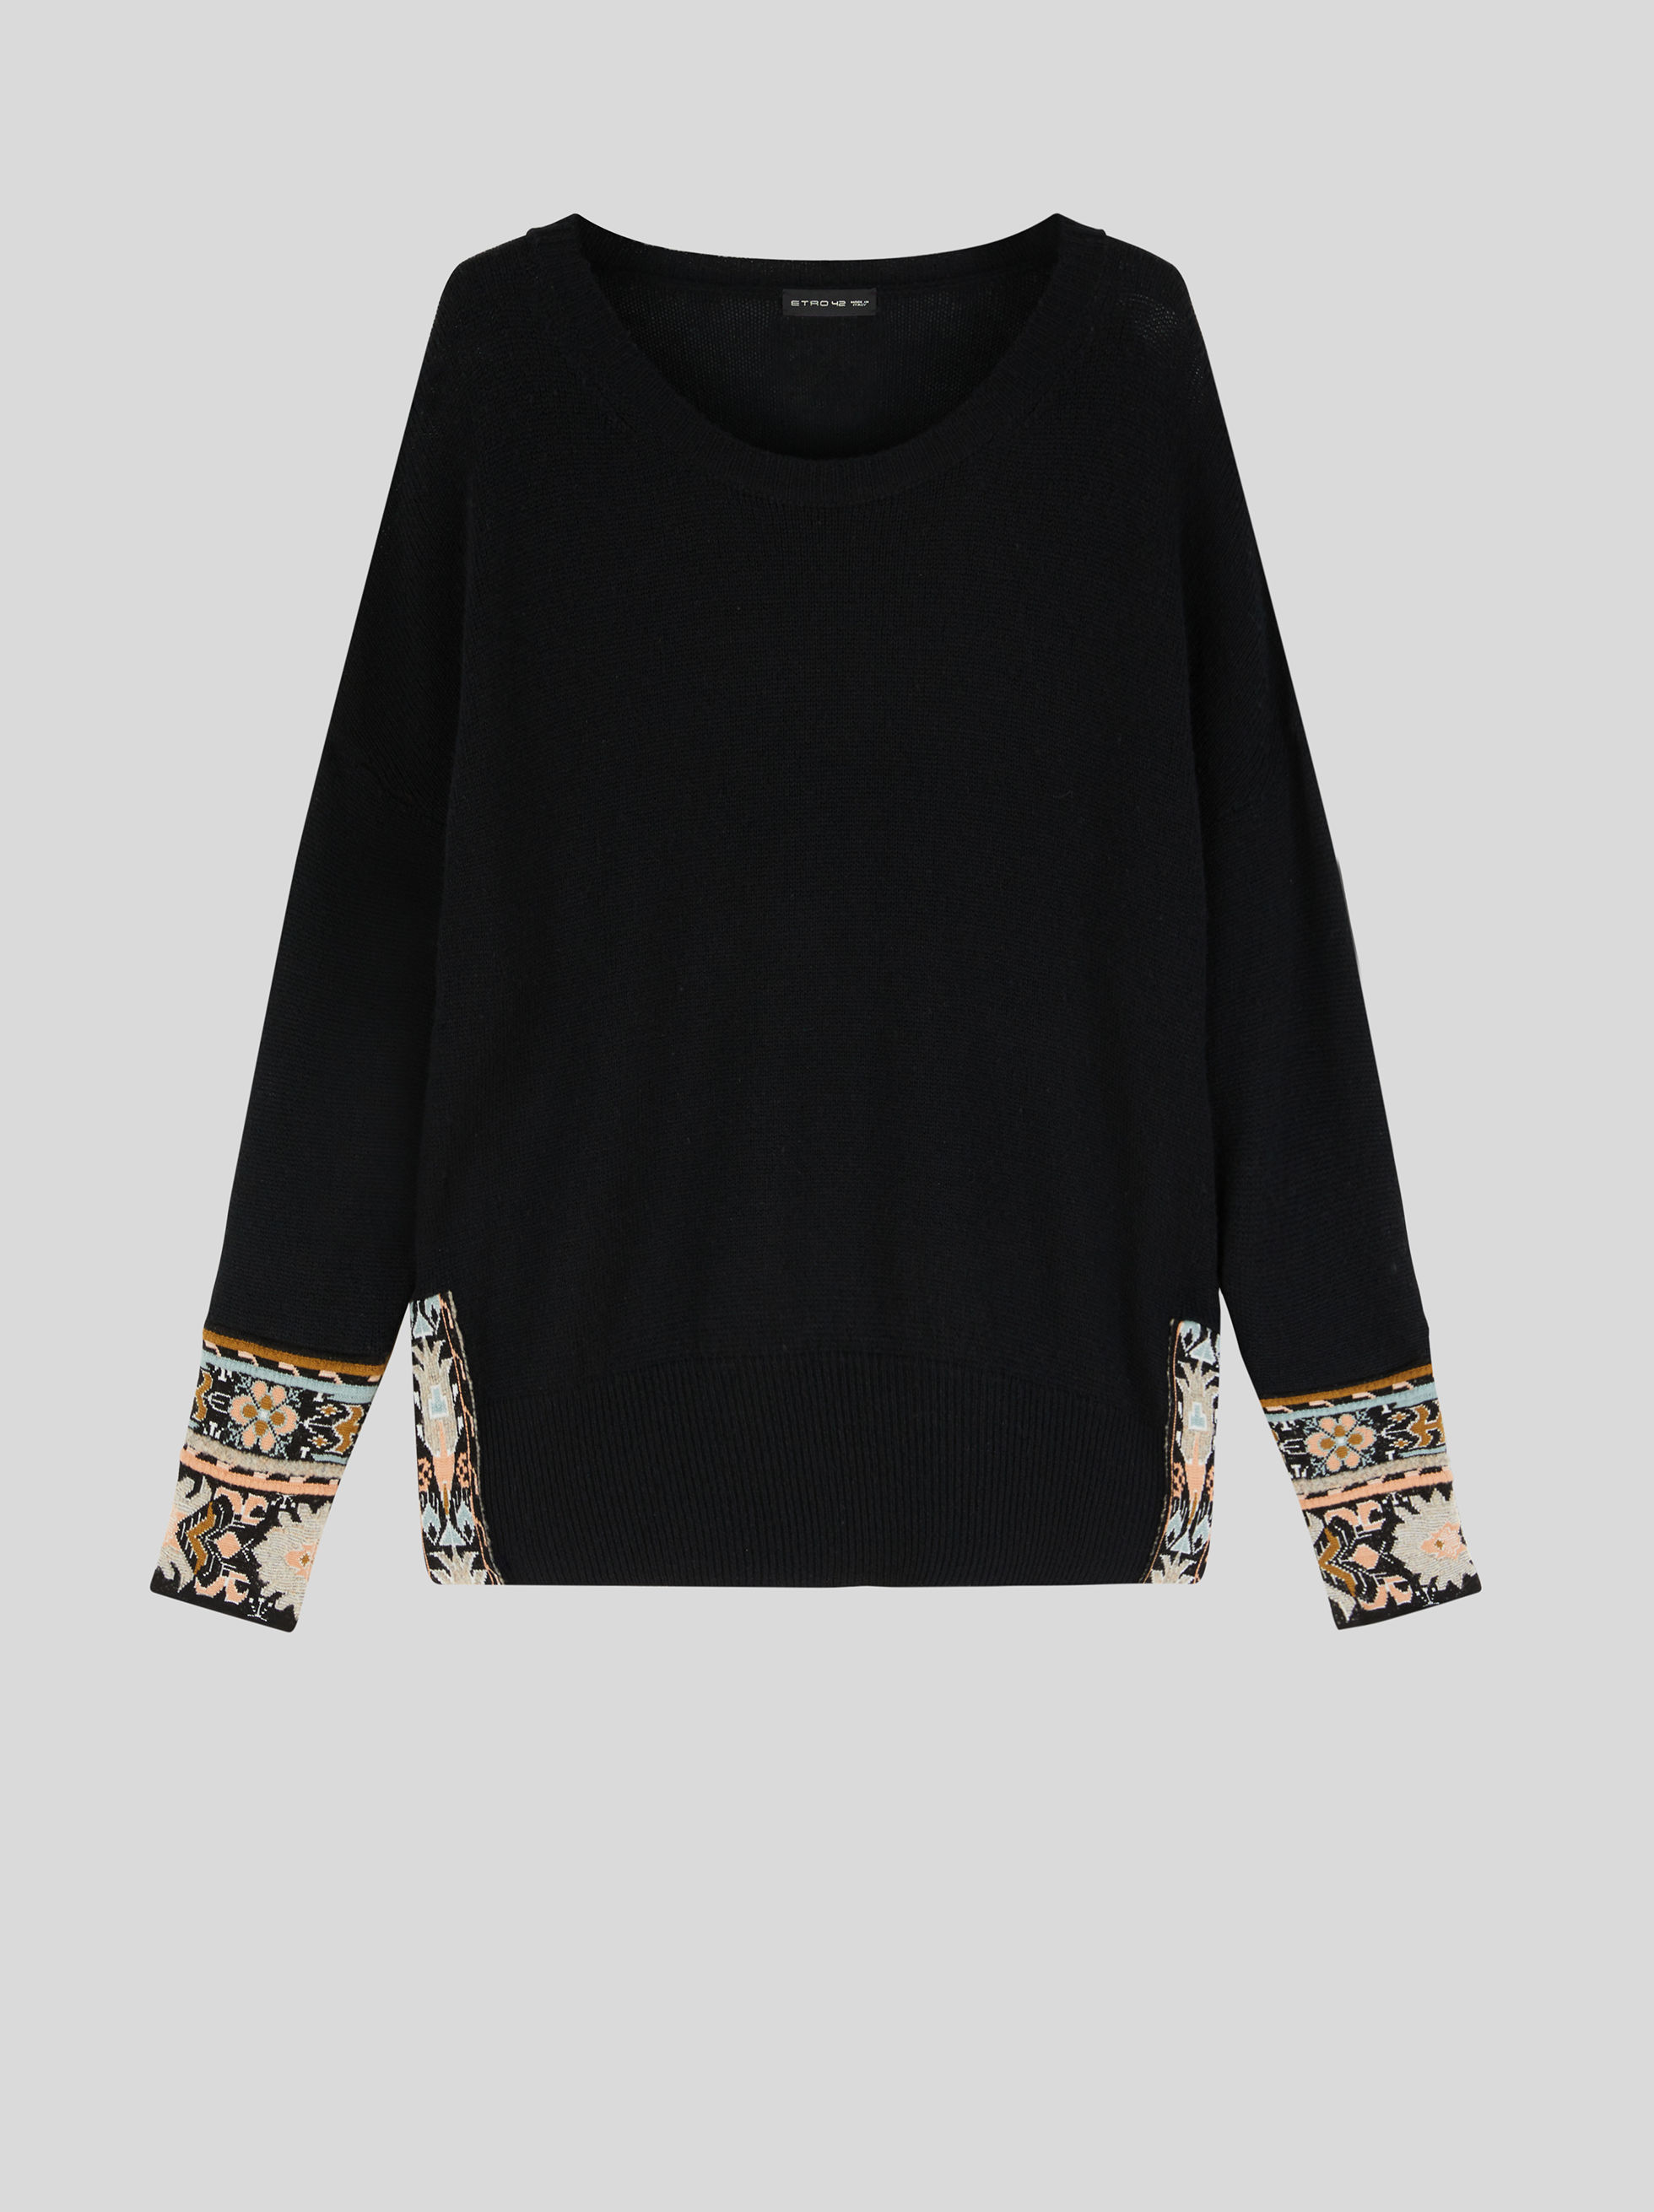 JUMPER WITH FLORAL JACQUARD PATTERNS